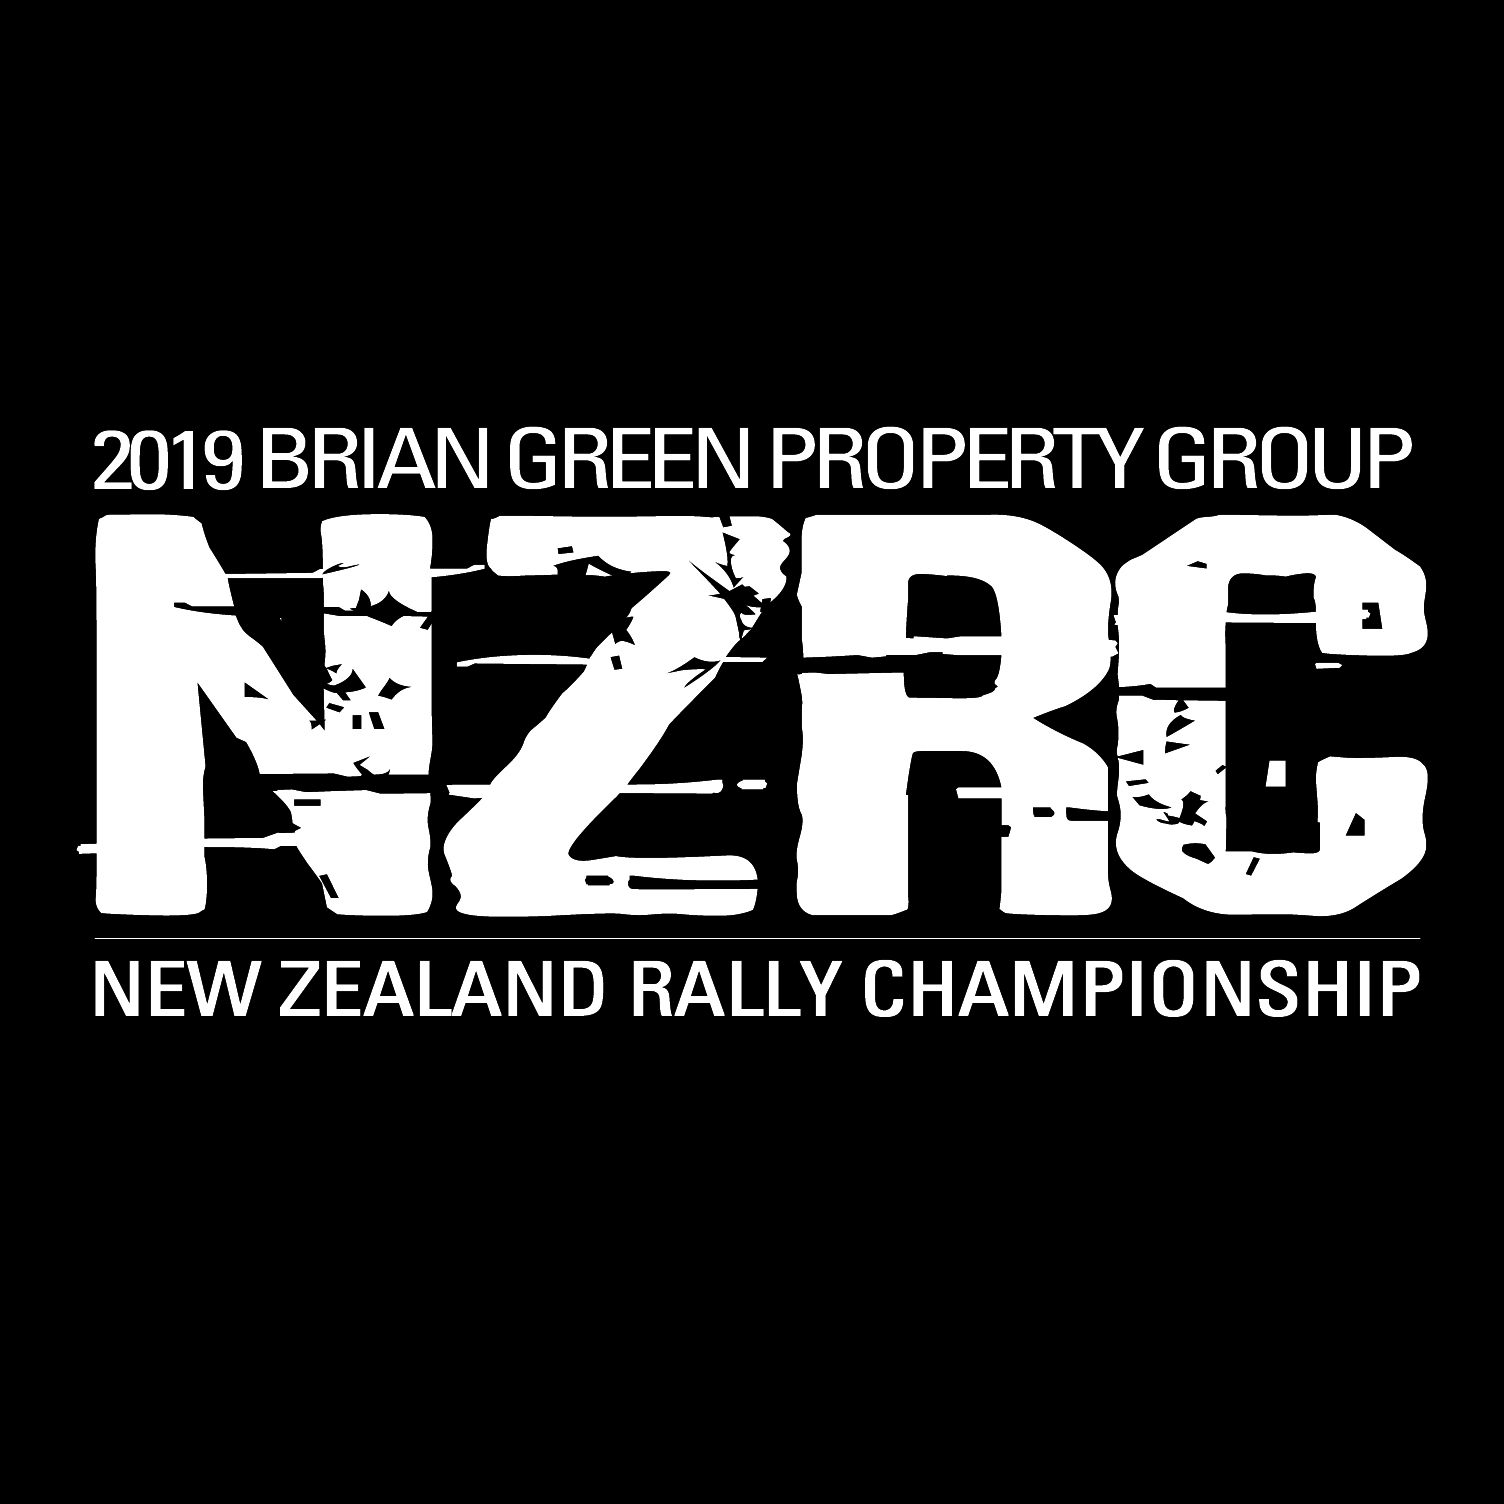 Holder takes out drama filled opening day at Whangarei | :: Brian Green Property Group New Zealand Rally Championship ::